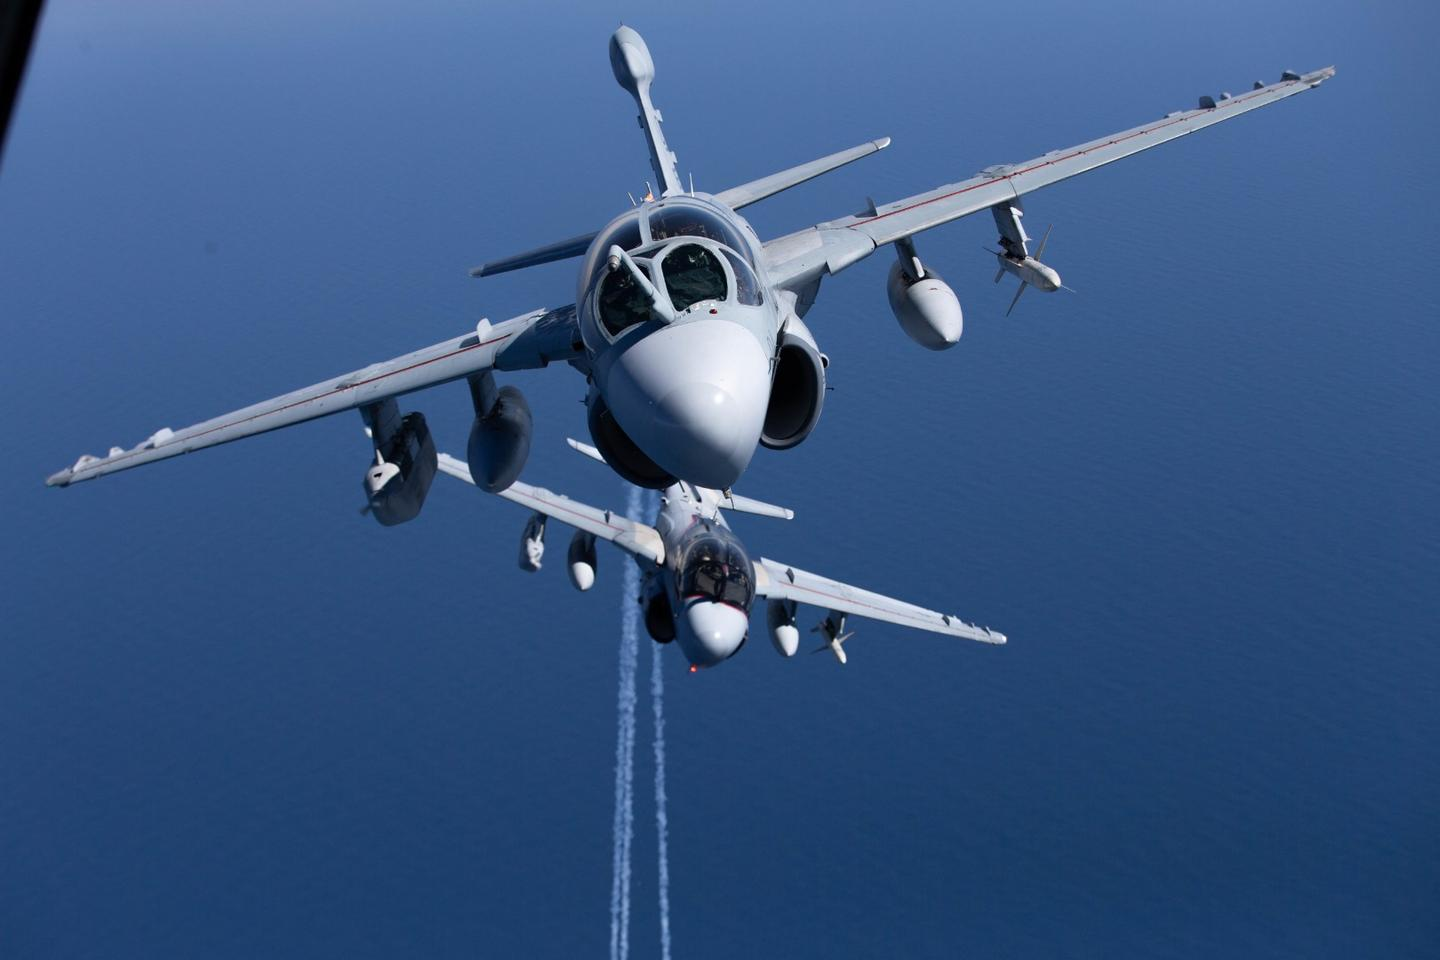 A pair of prowlers in flight prior to retirement